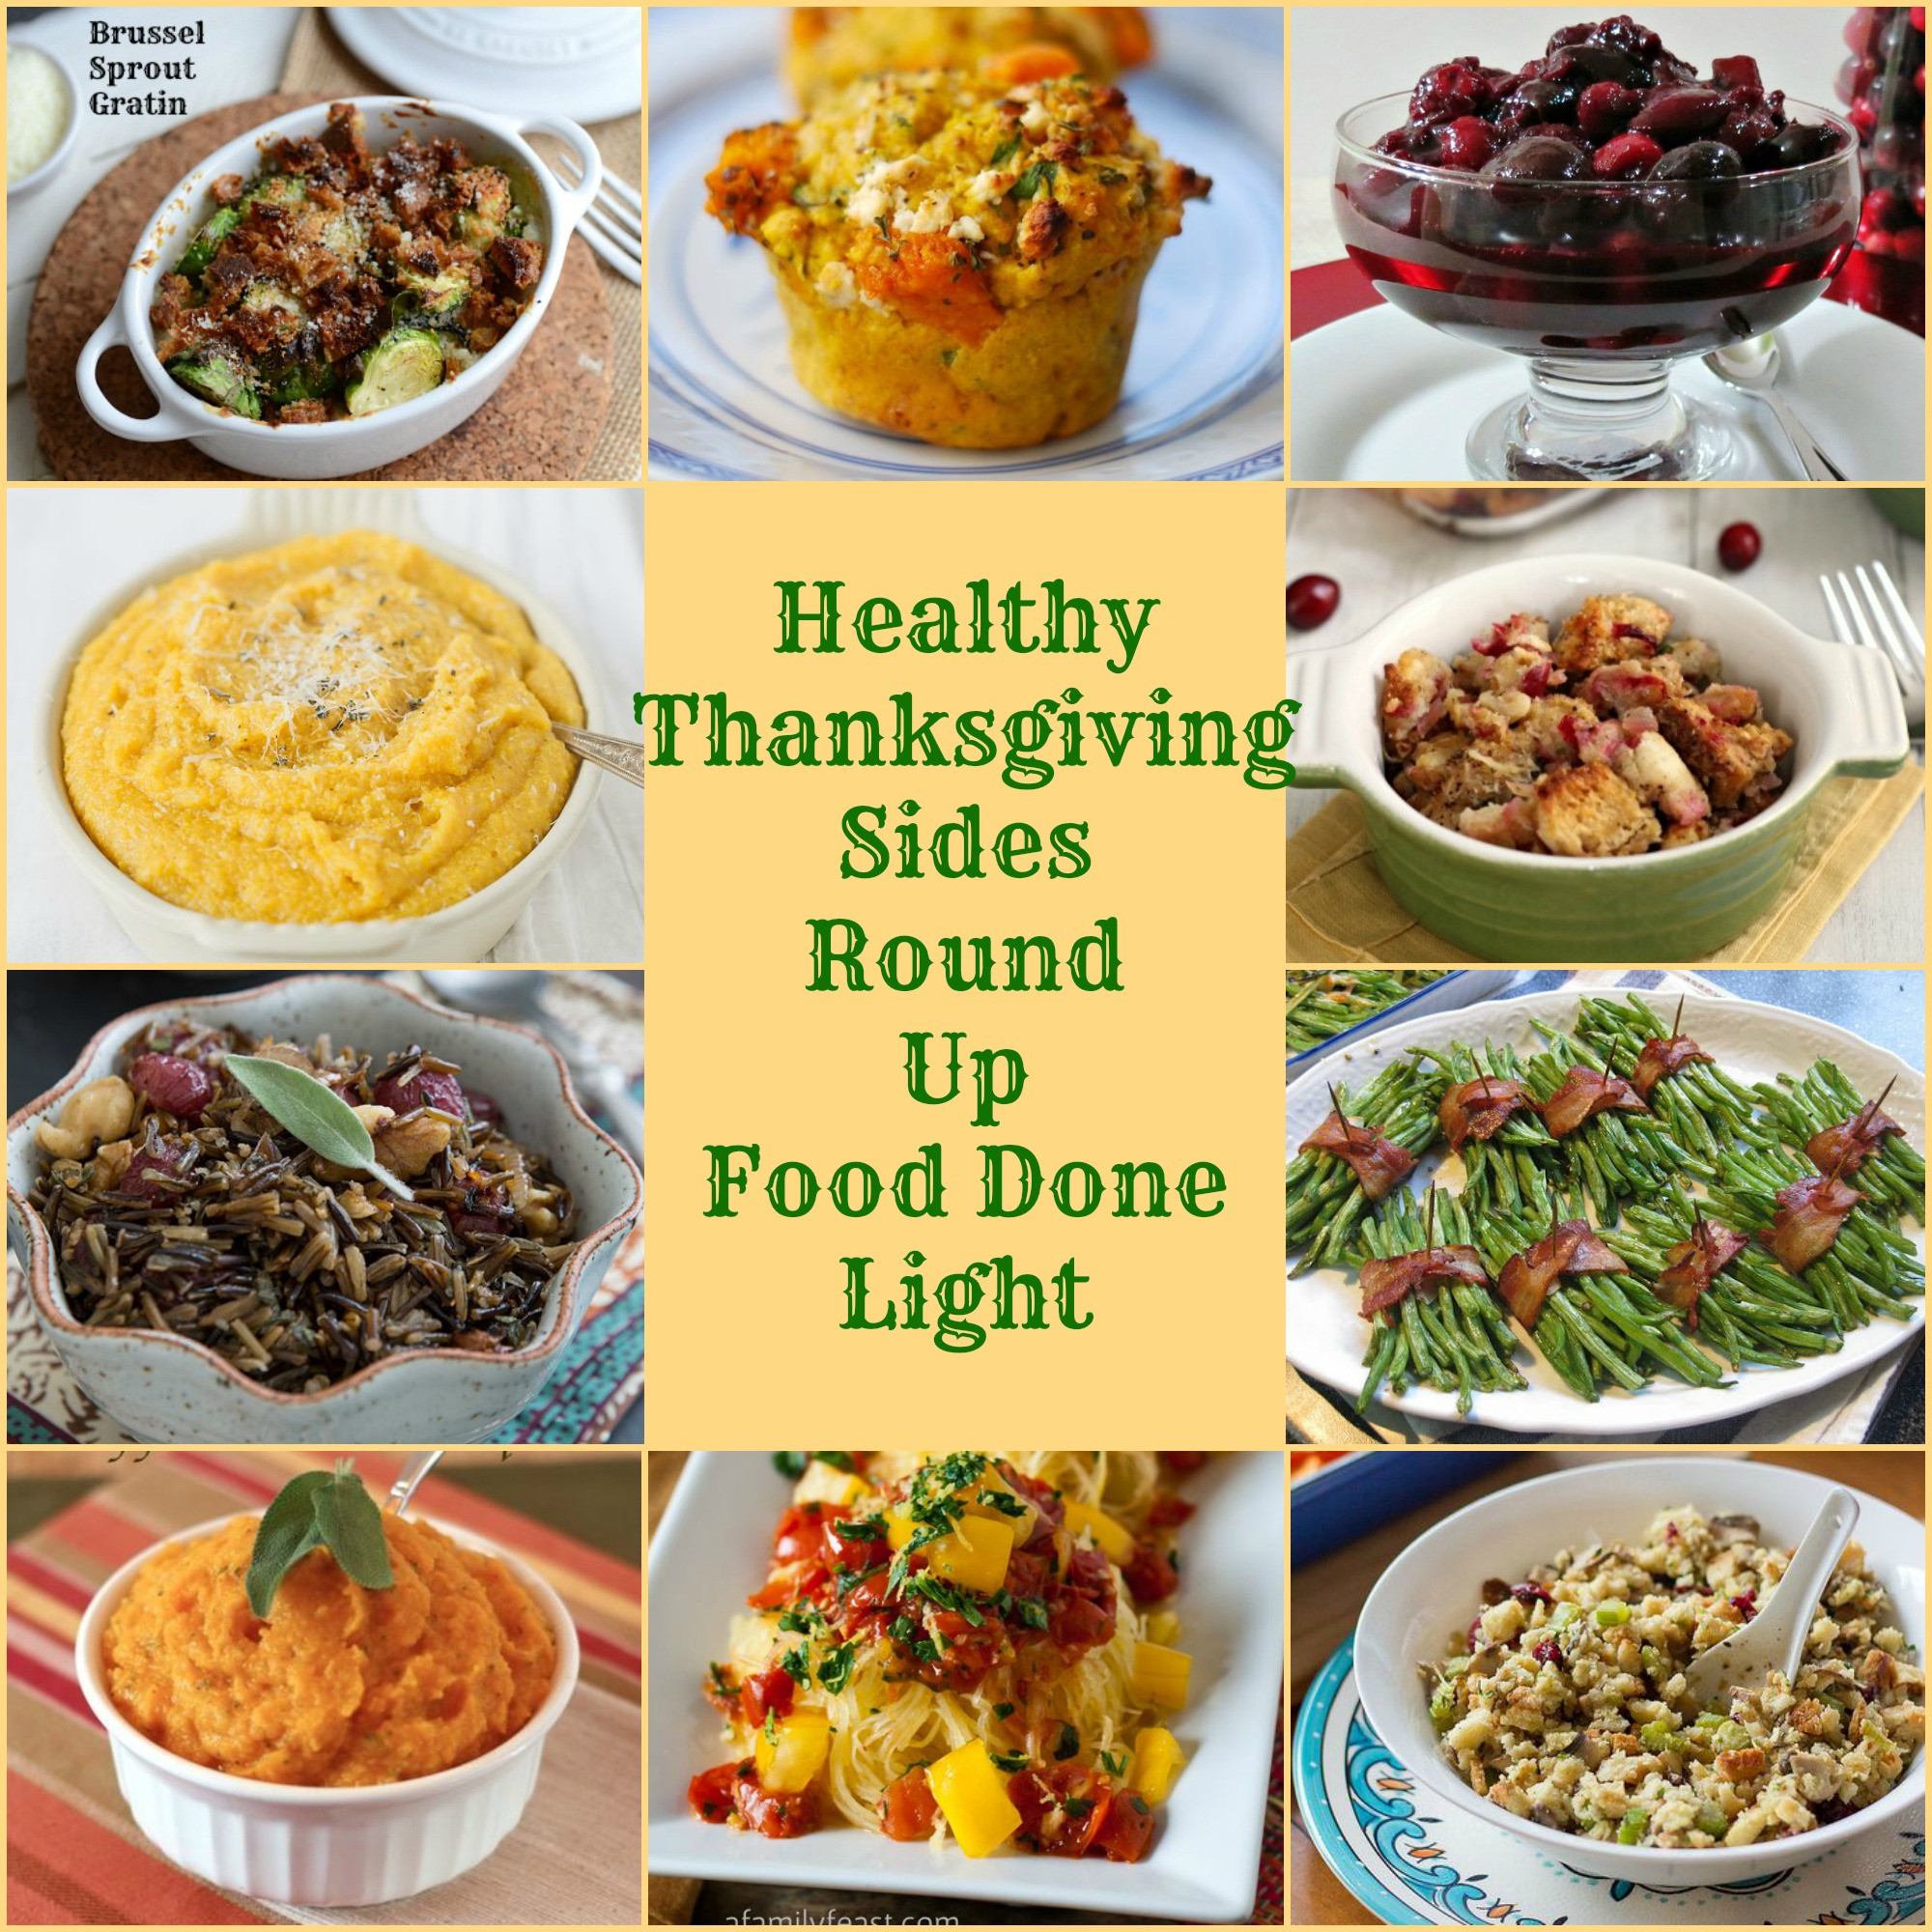 Healthy Thanksgiving Recipes  Healthy Thanksgiving Sides Recipe Round Up Food Done Light